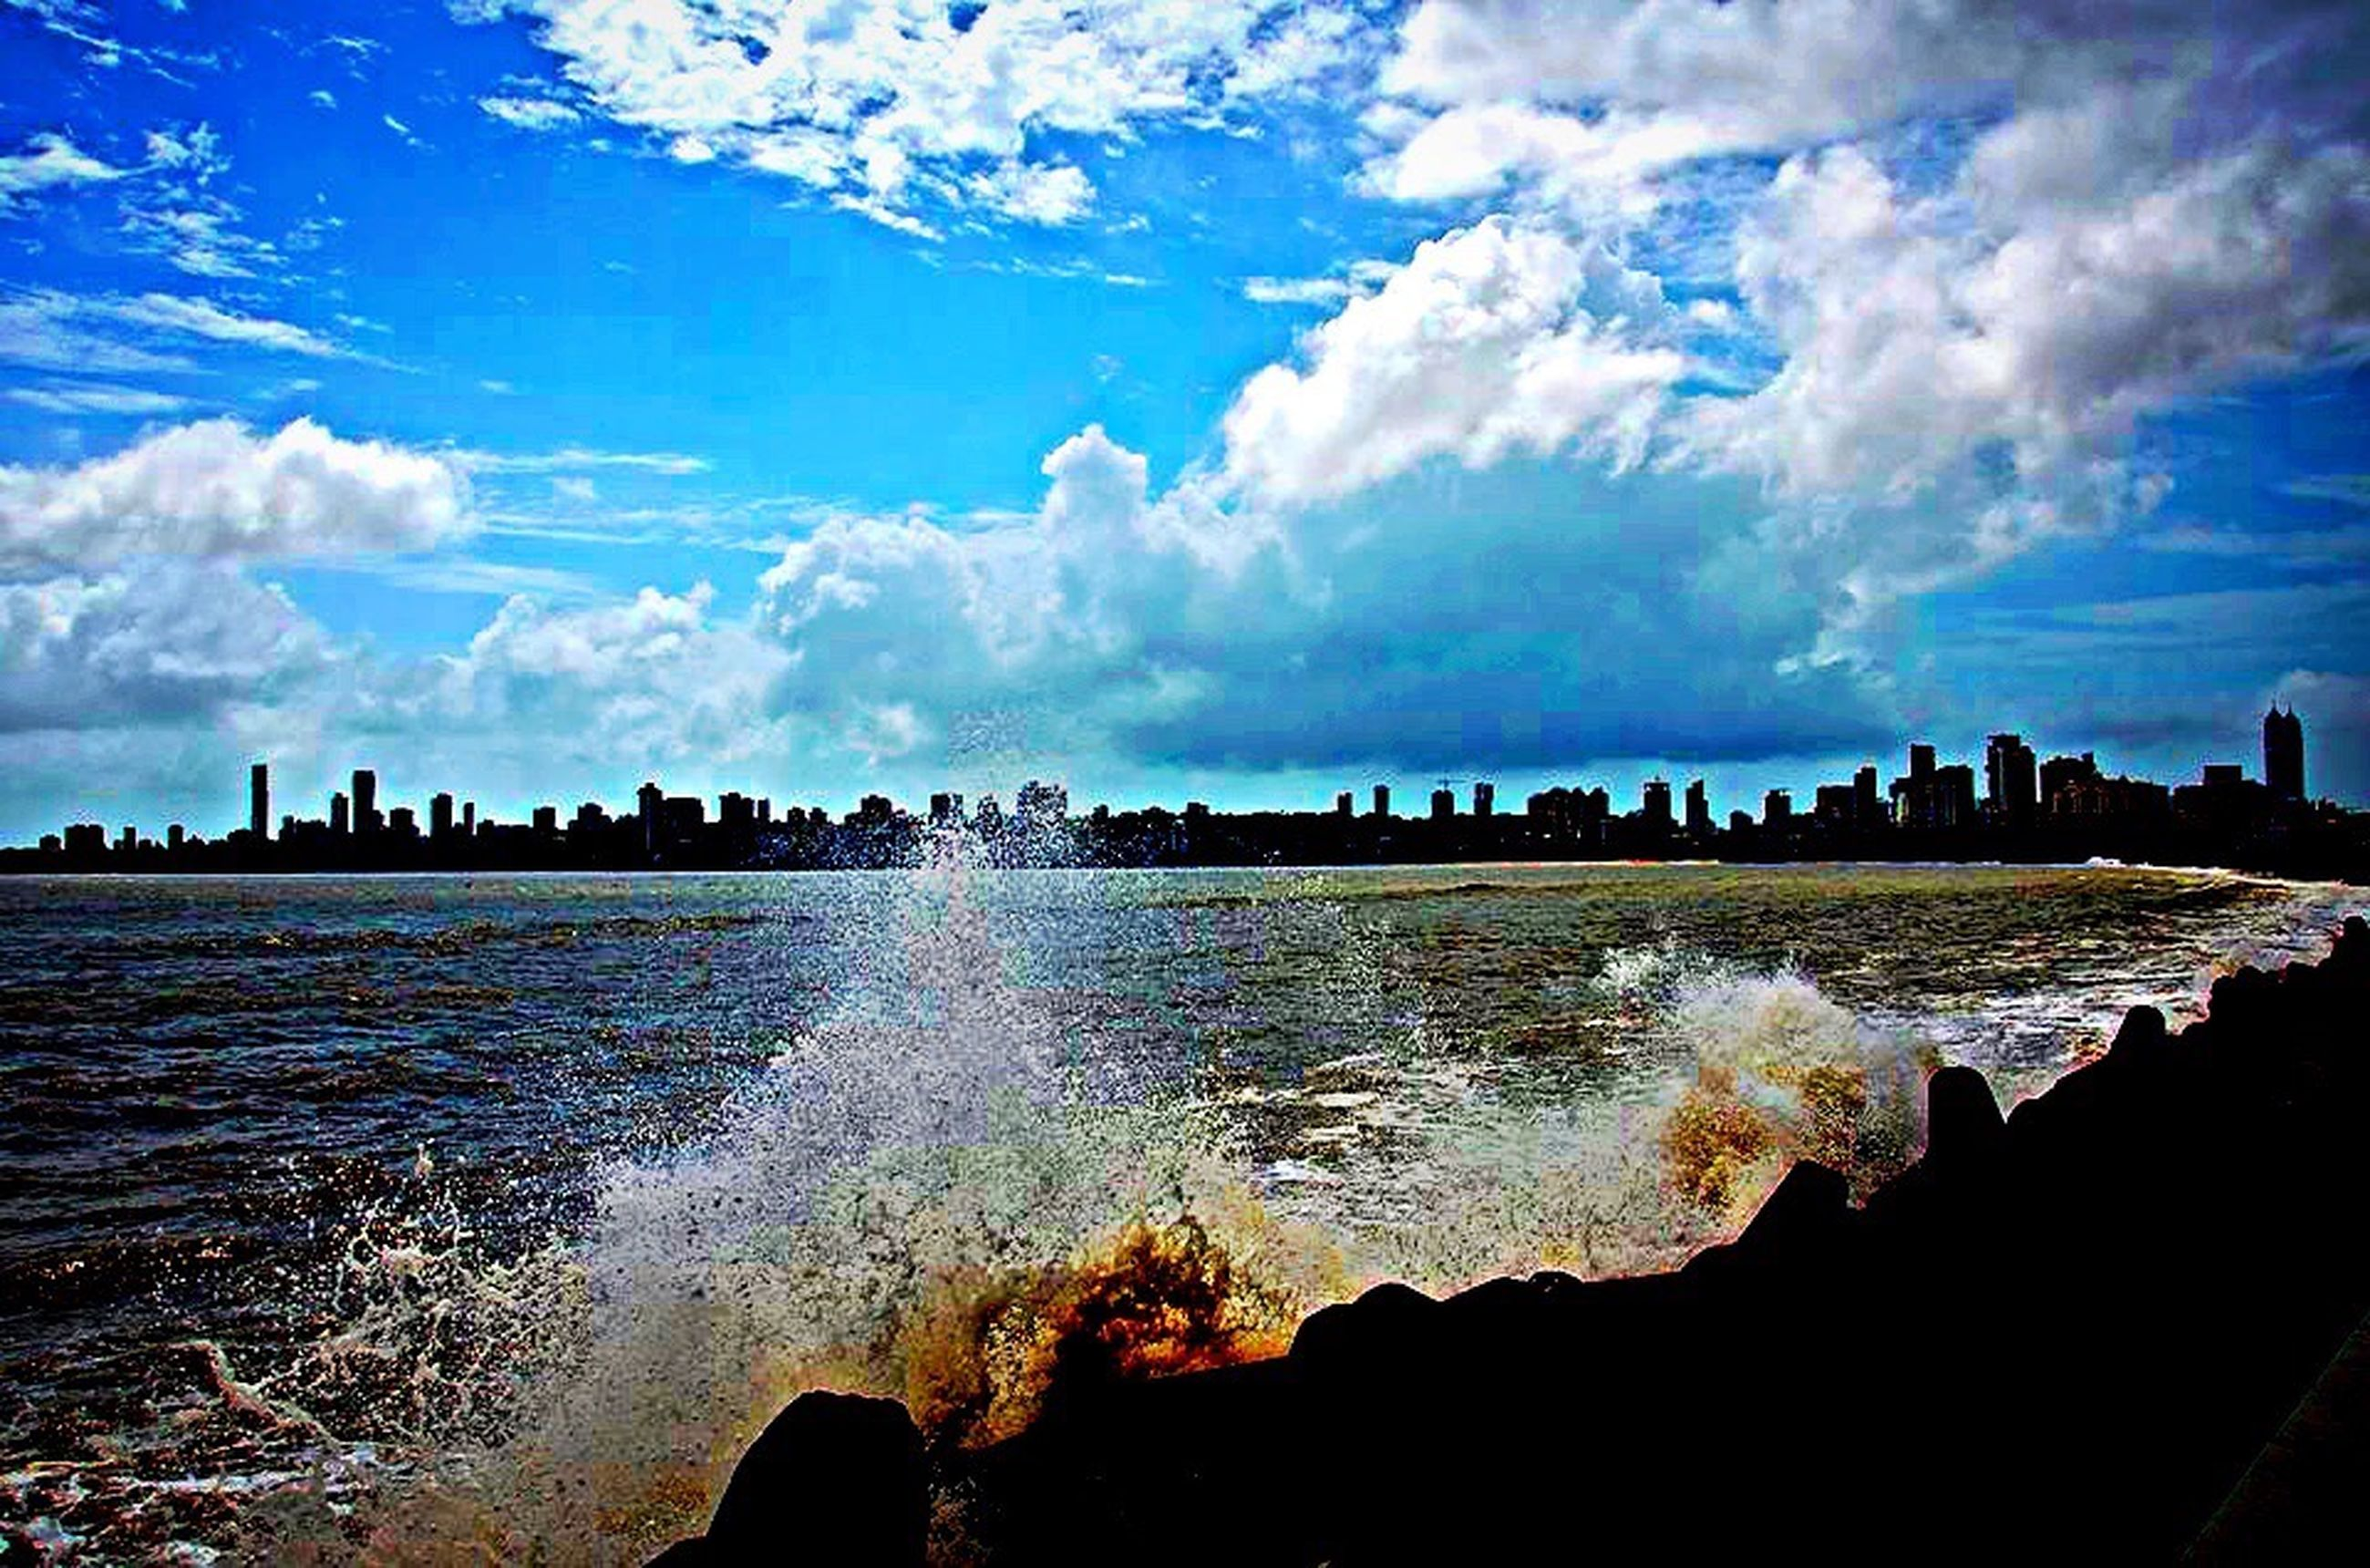 sky, water, motion, nature, beauty in nature, cloud - sky, scenics, landscape, outdoors, large group of people, power in nature, people, day